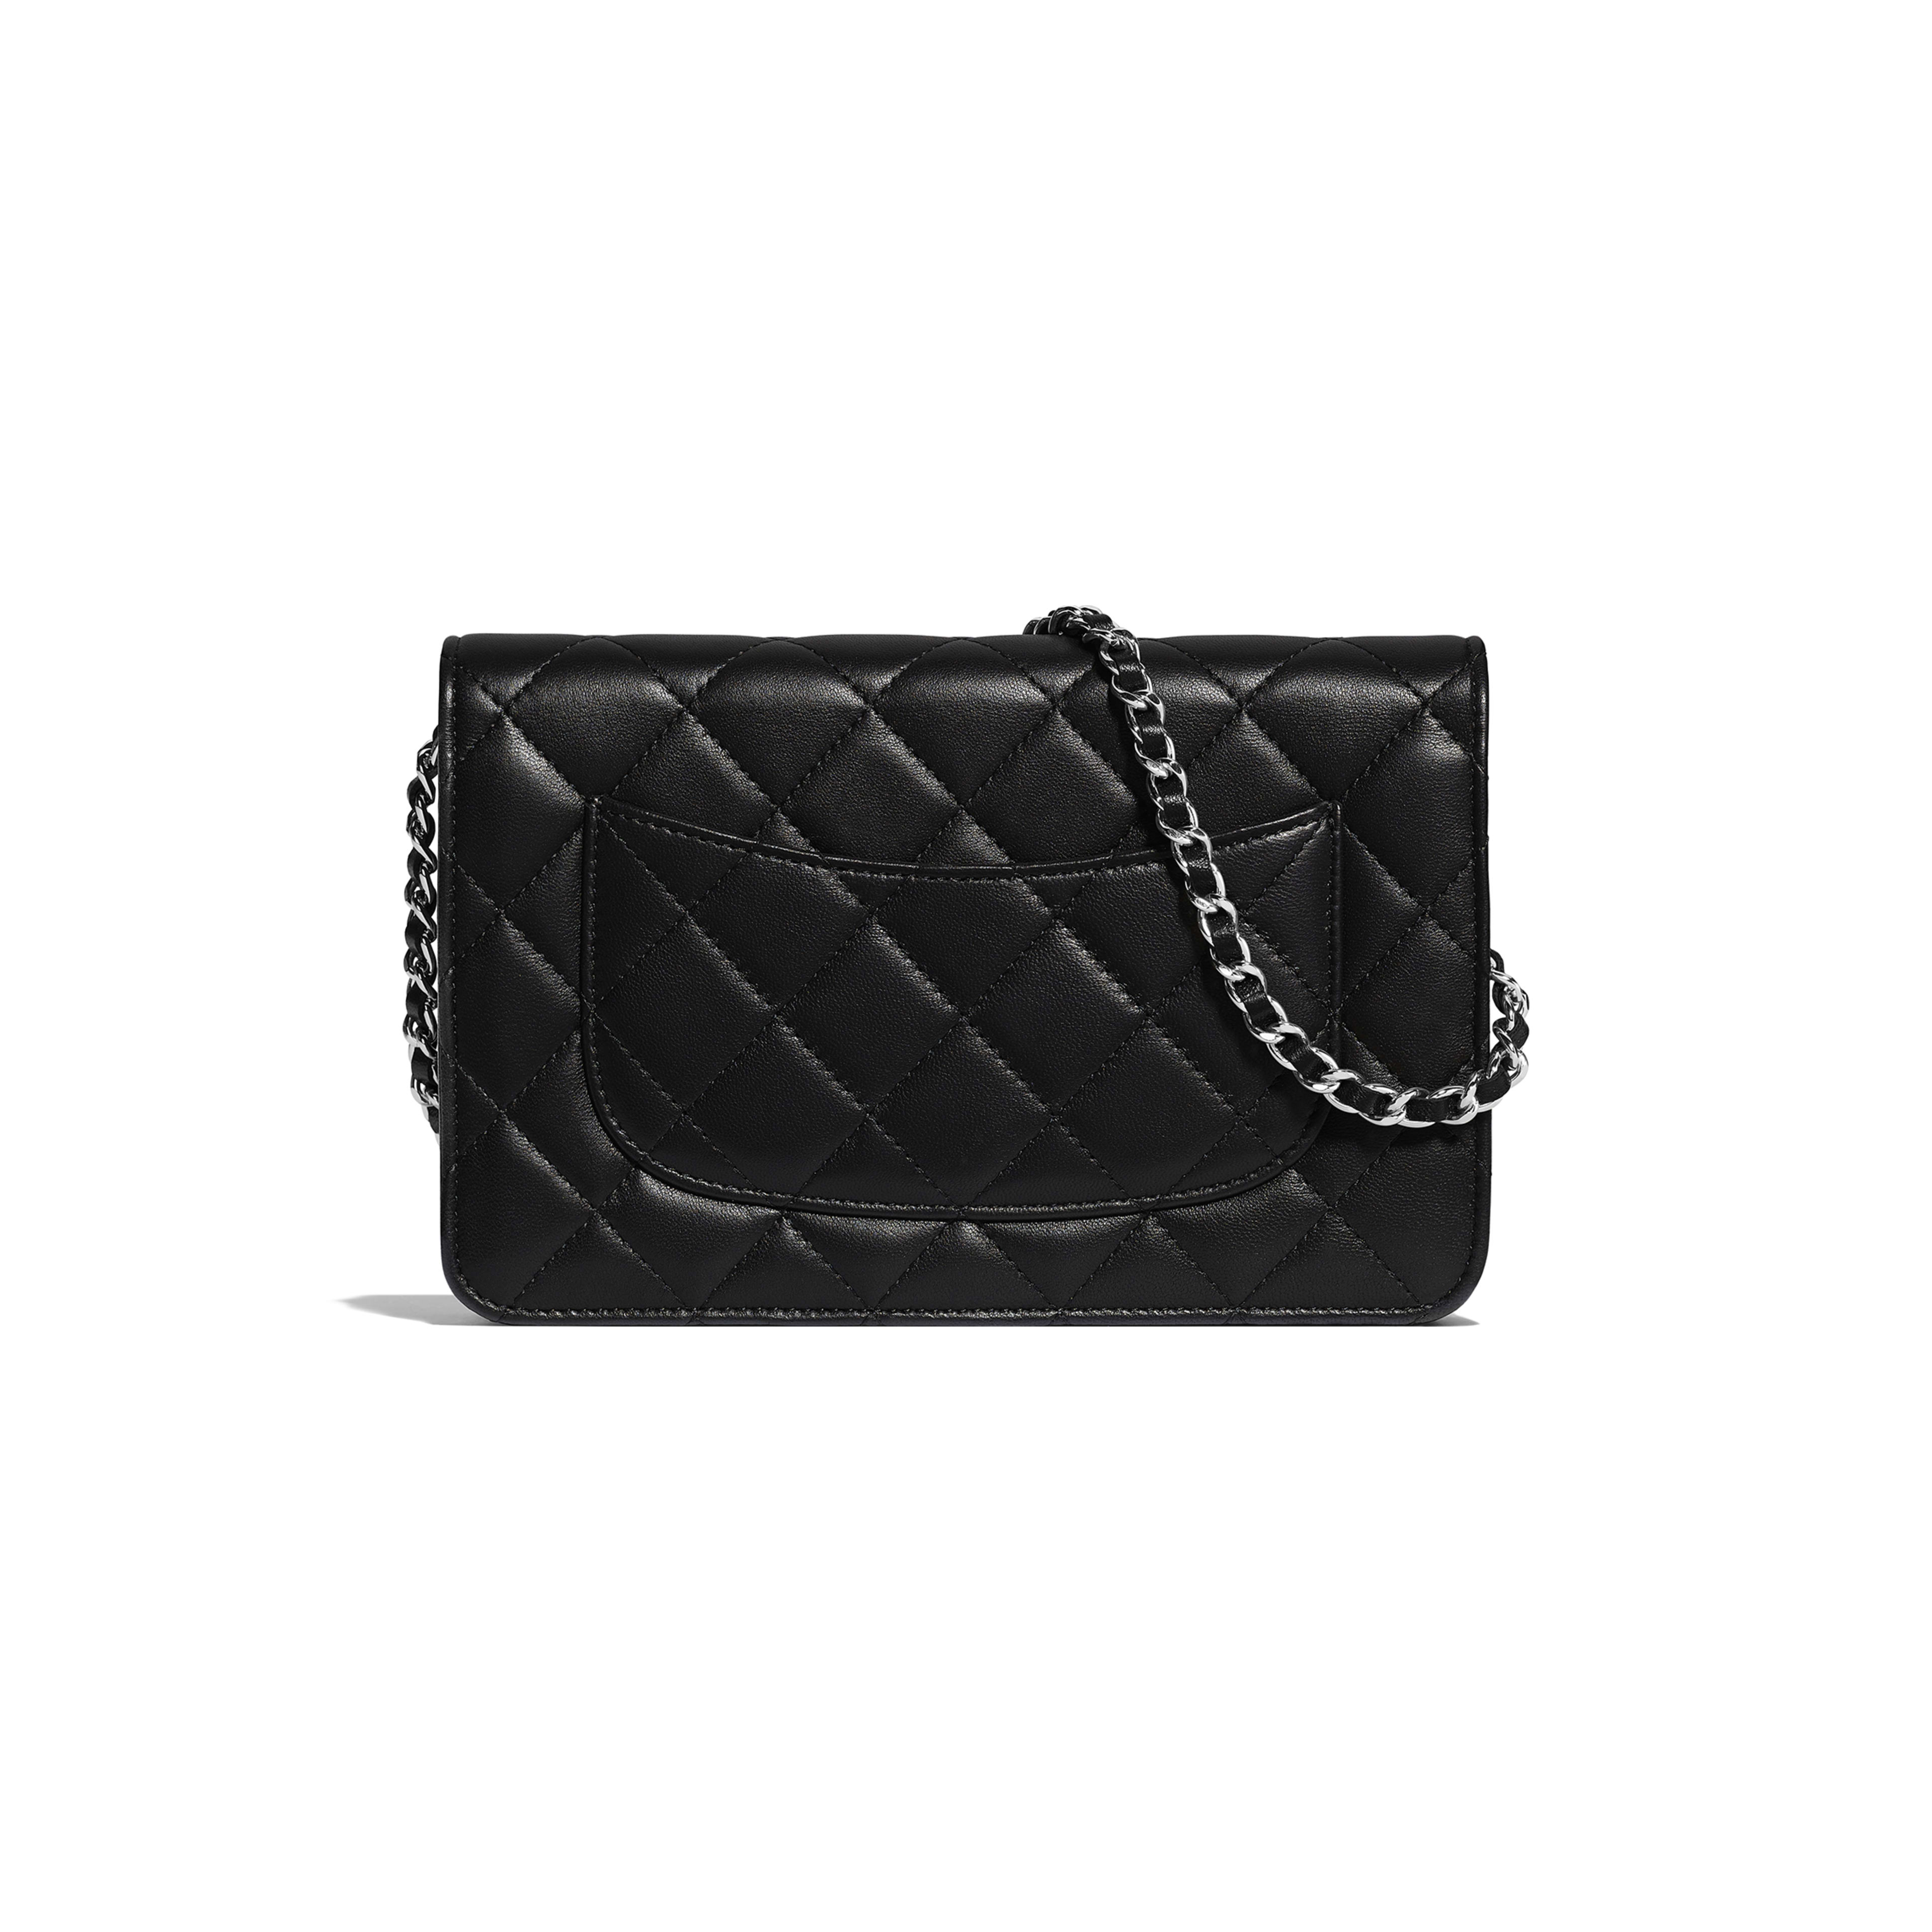 Classic Wallet on Chain - Black - Lambskin & Silver-Tone Metal - Alternative view - see full sized version